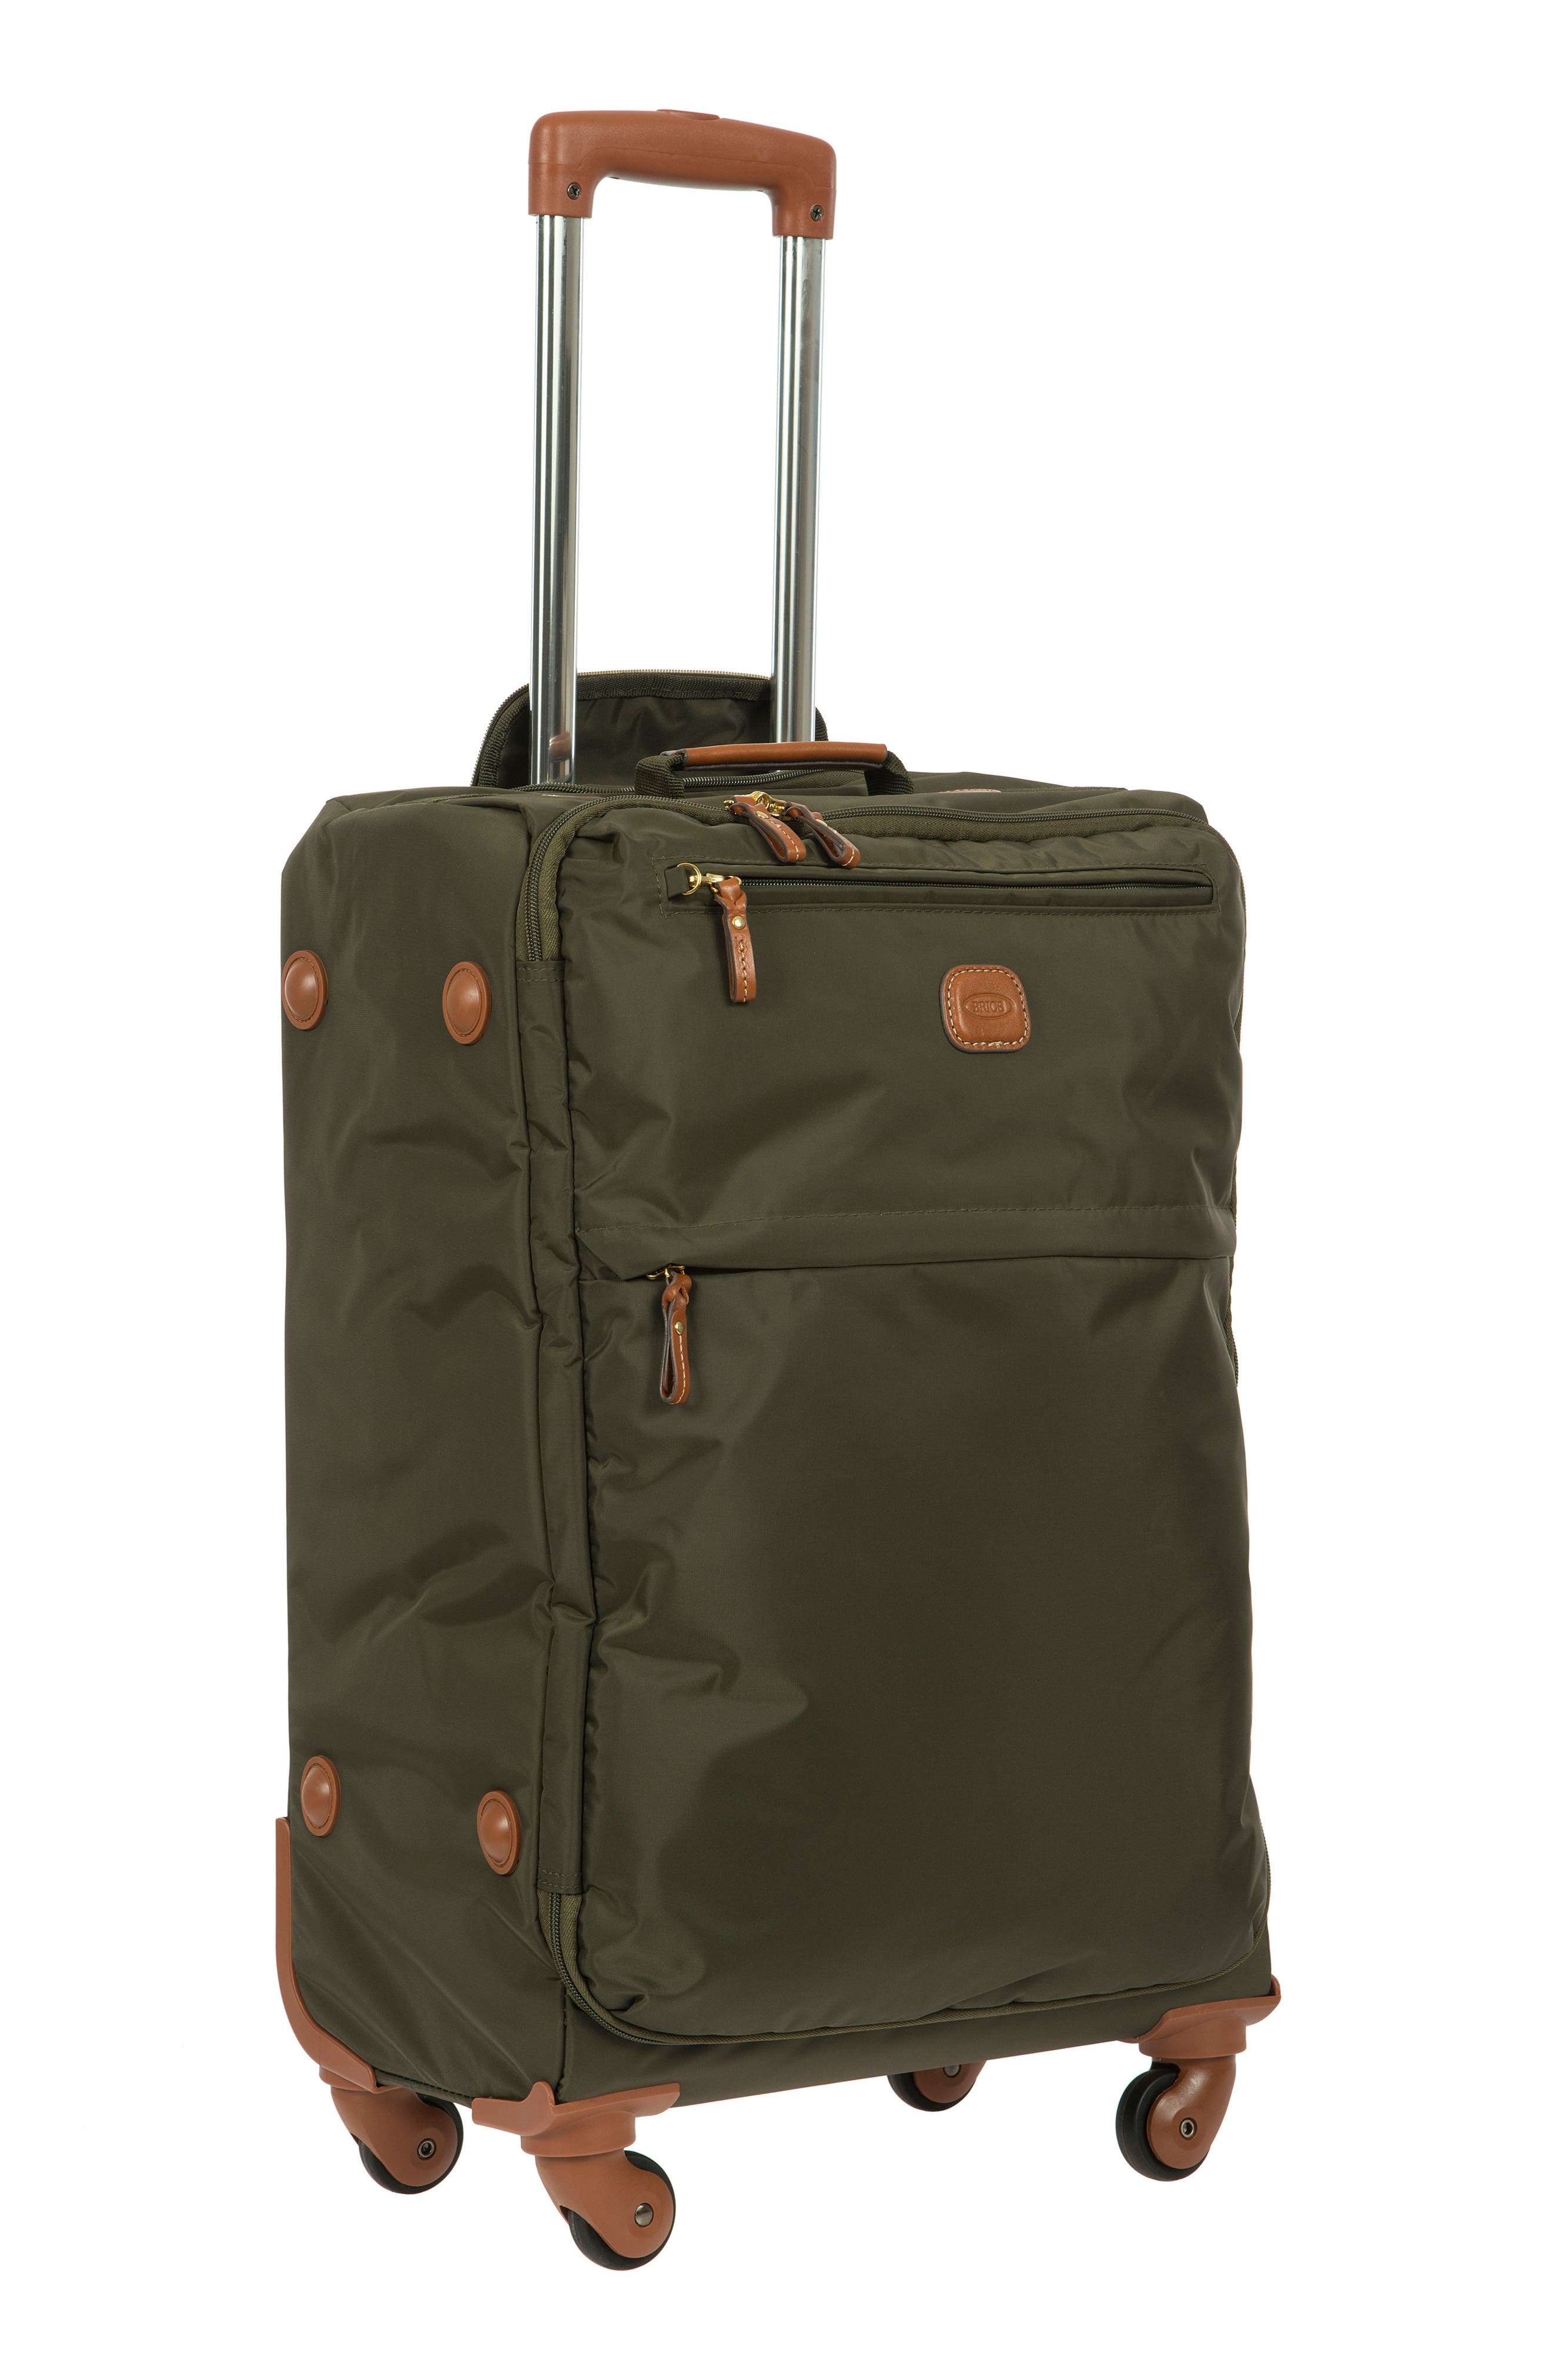 X-Bag 25-Inch Spinner Suitcase,                             Alternate thumbnail 11, color,                             OLIVE